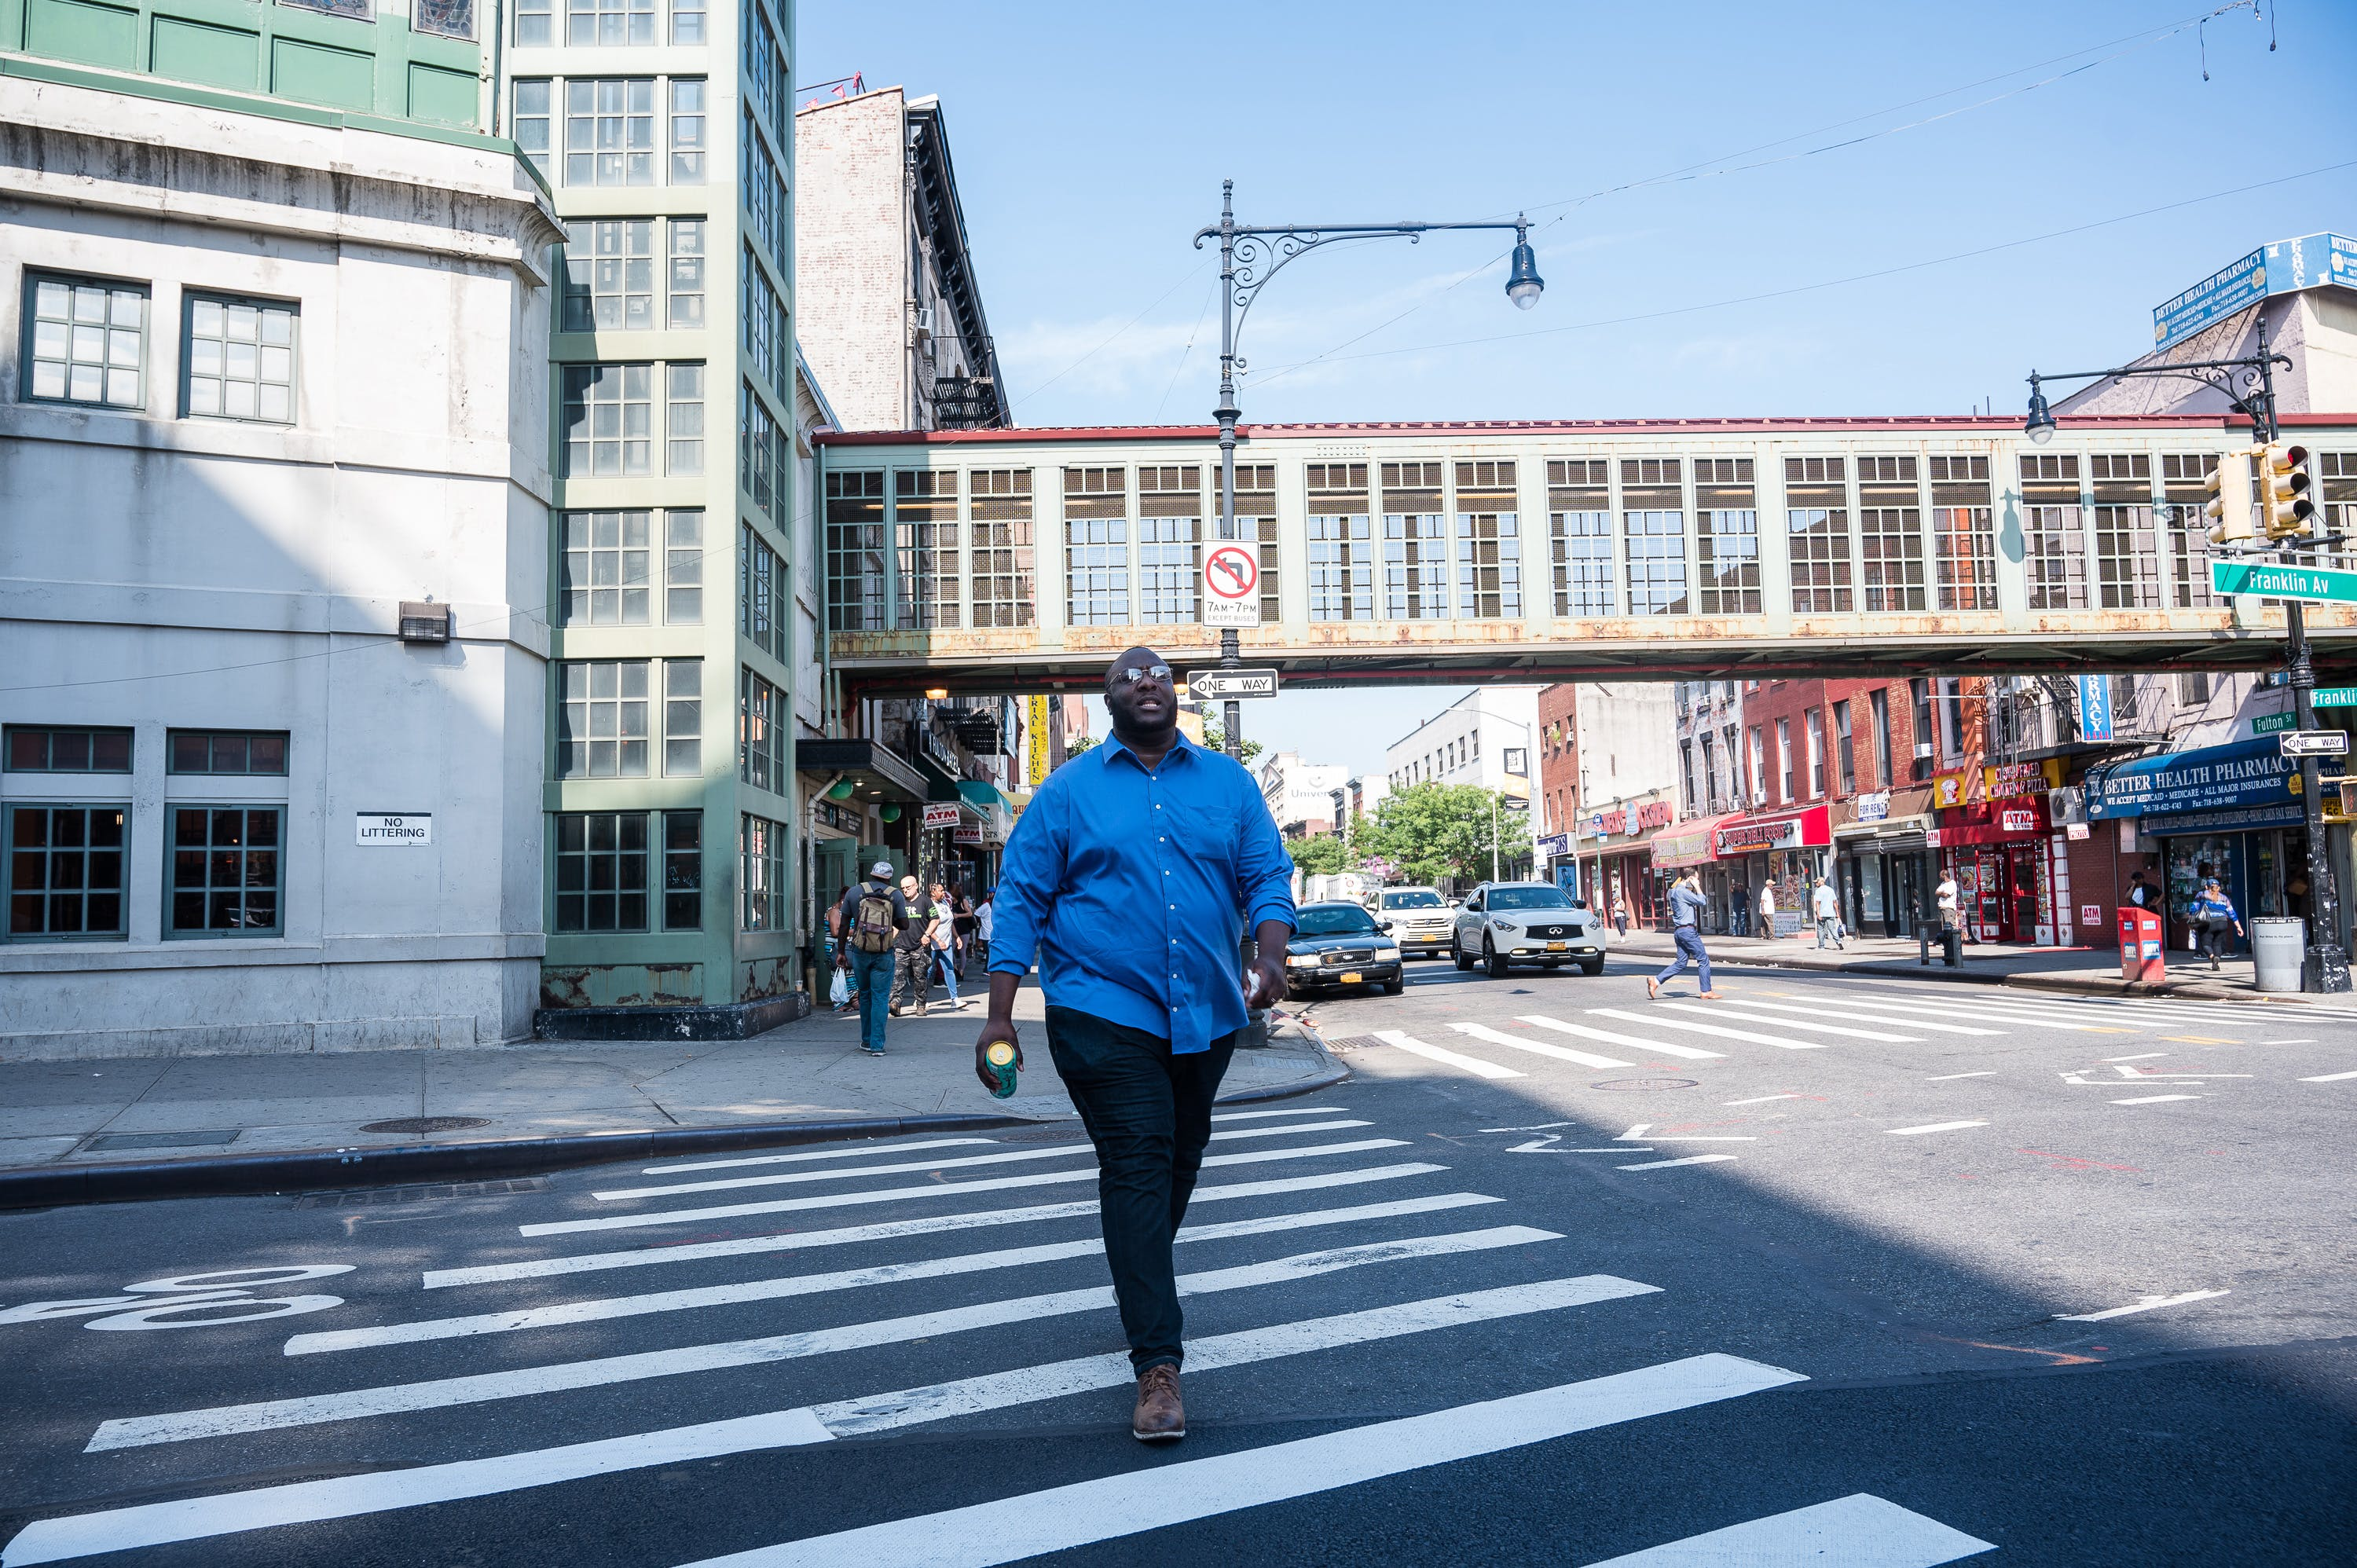 James walks along Fulton Street, a major thoroughfare that divides the Brooklyn neighborhoods of  Clinton Hill and Prospect Heights , on August 19, 2019.